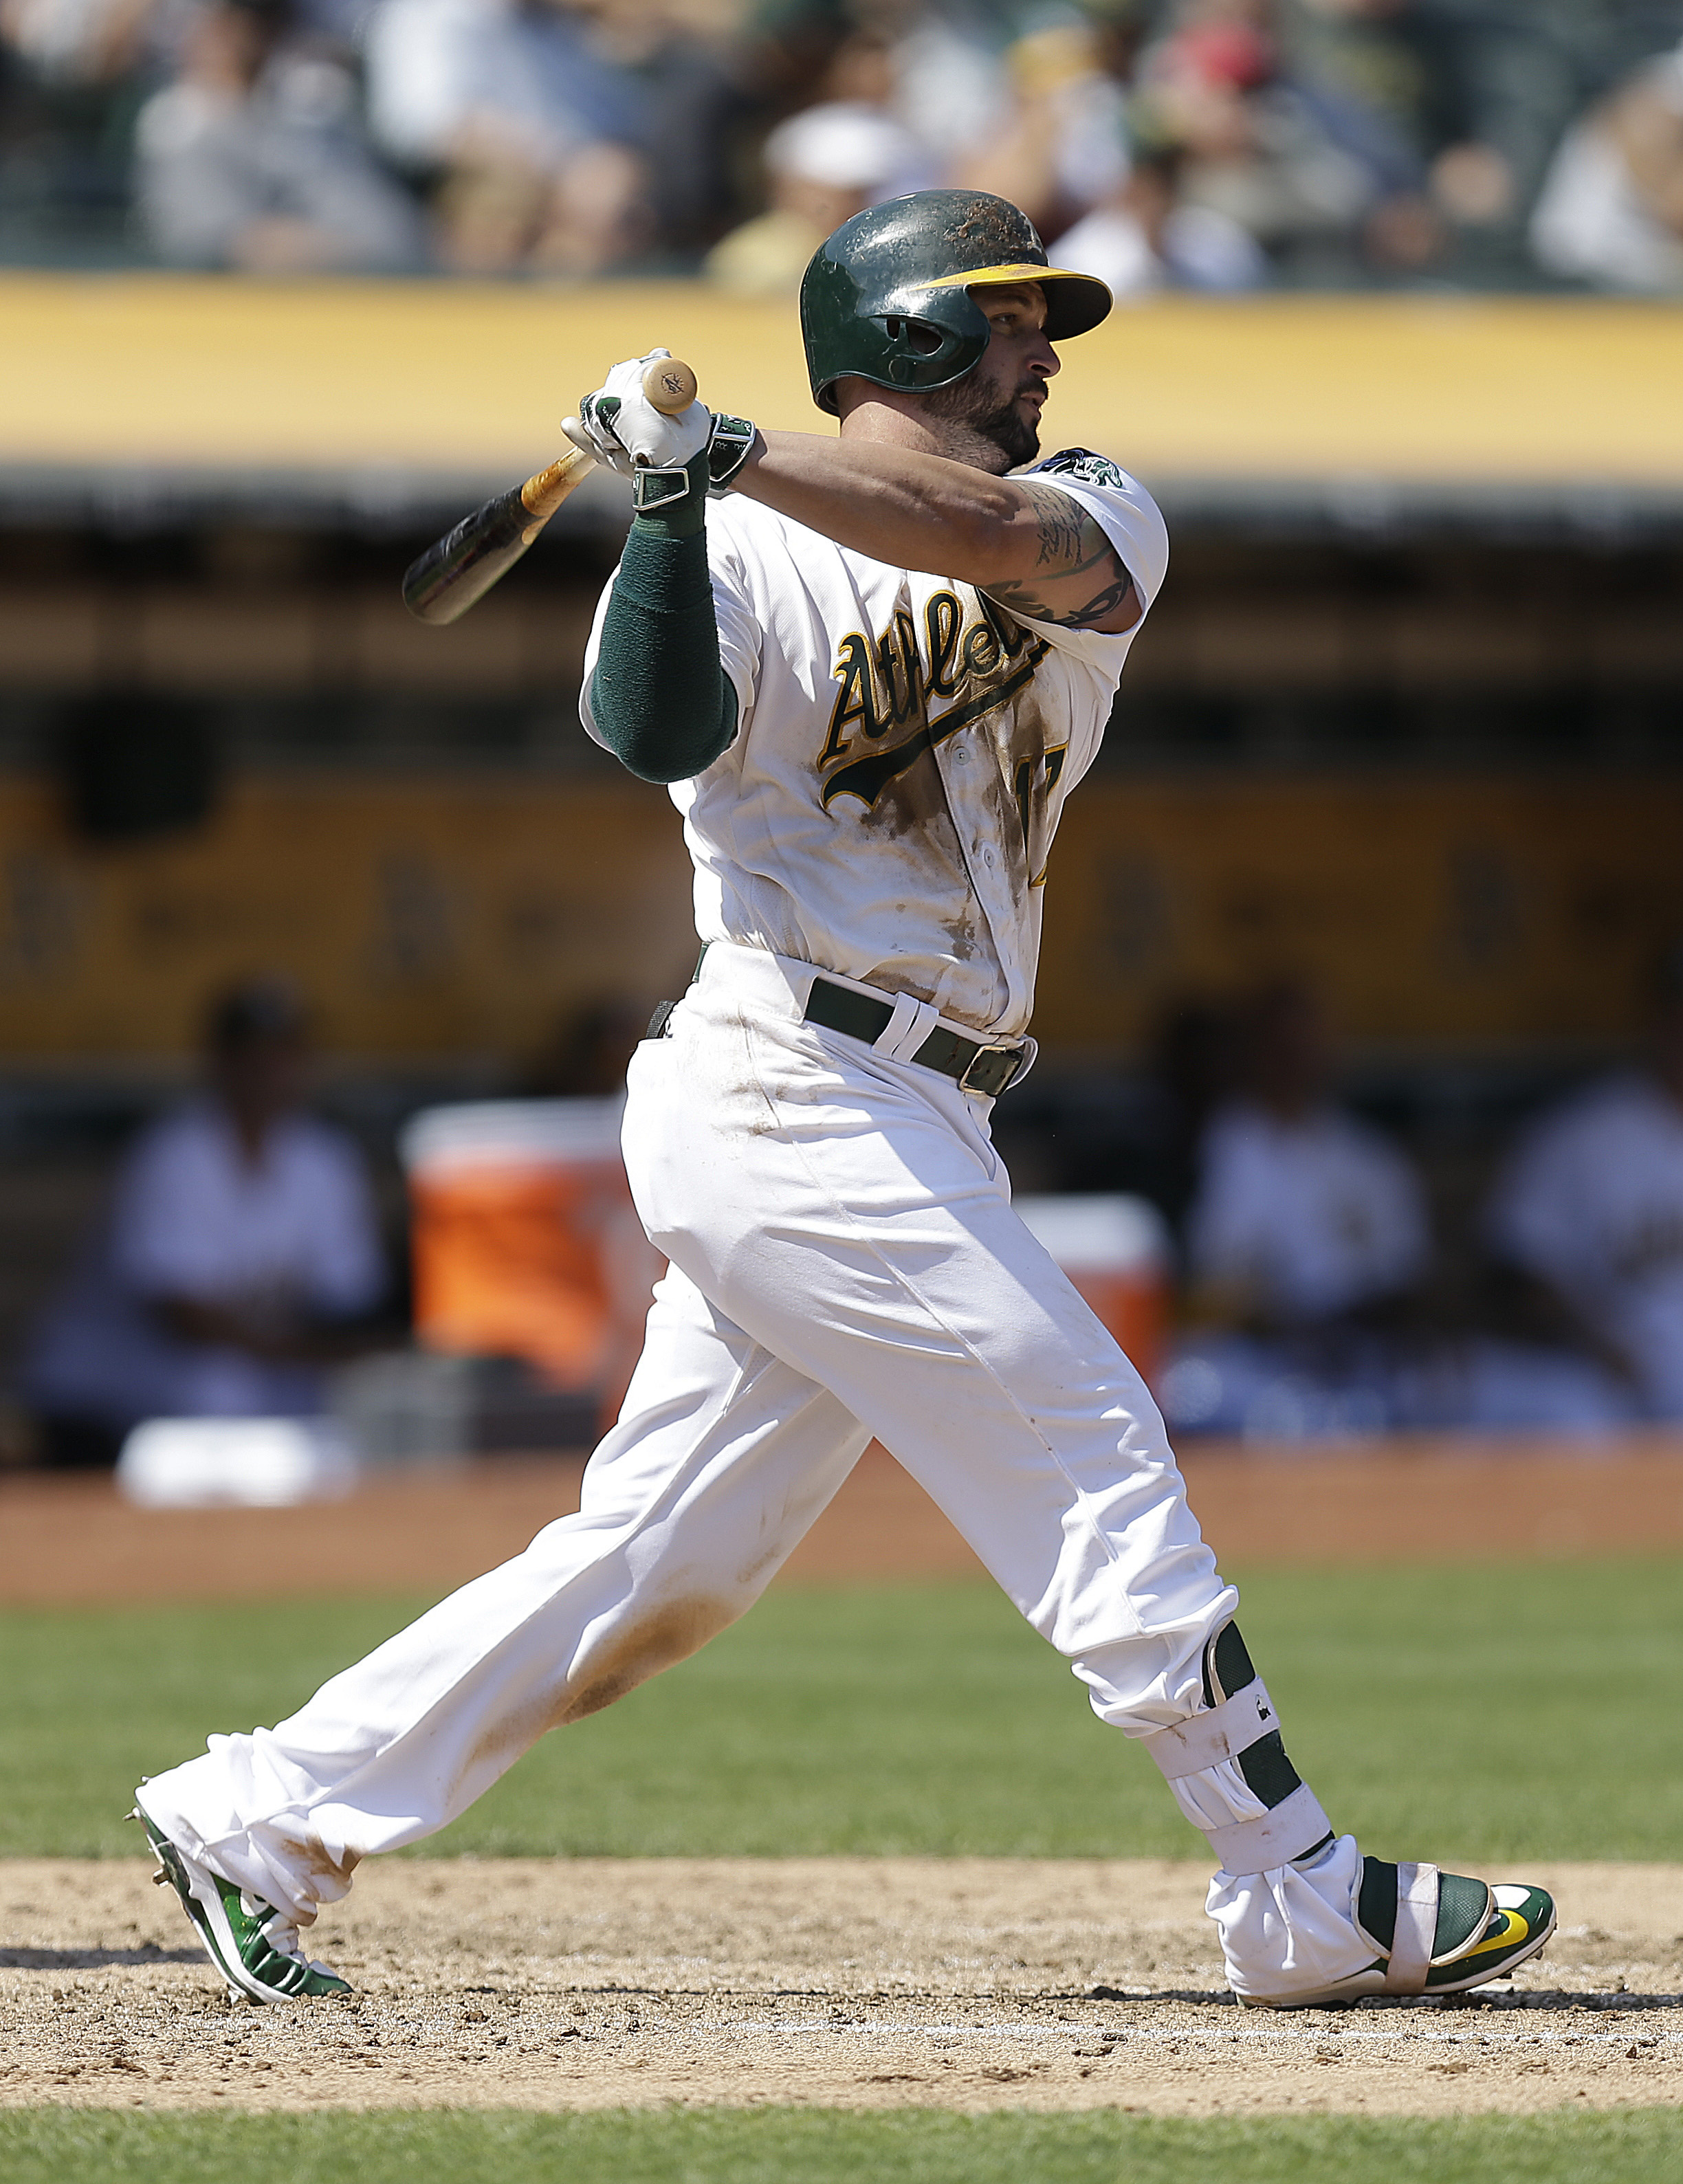 Oakland Athletics' Yonder Alonso swings for an RBI single off Los Angeles Angels' Jhoulys Chacin in the fifth inning of a baseball game Wednesday, Sept. 7, 2016, in Oakland, Calif. (AP Photo/Ben Margot)